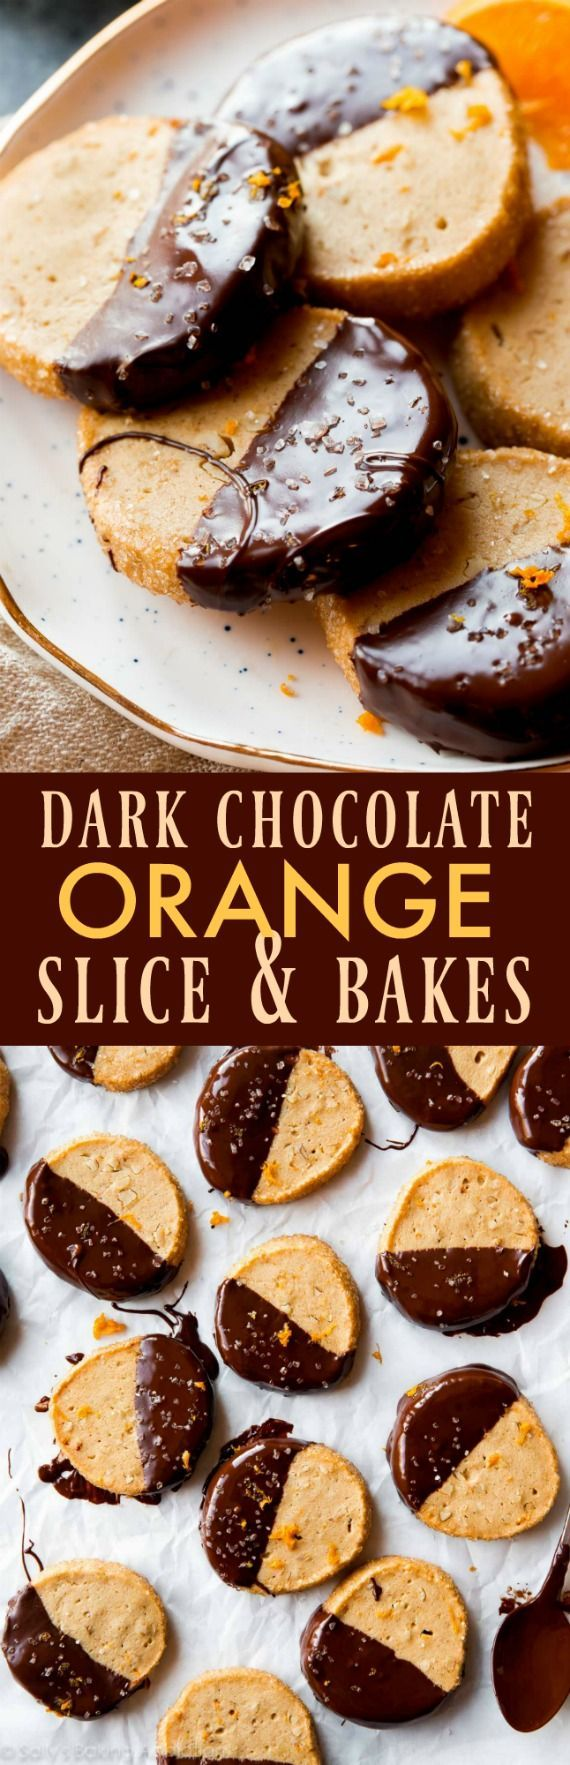 Dark chocolate & sweet orange slice and bake cookies! Make ahead of time and pop into the oven! Recipe on sallysbakingaddiction.com